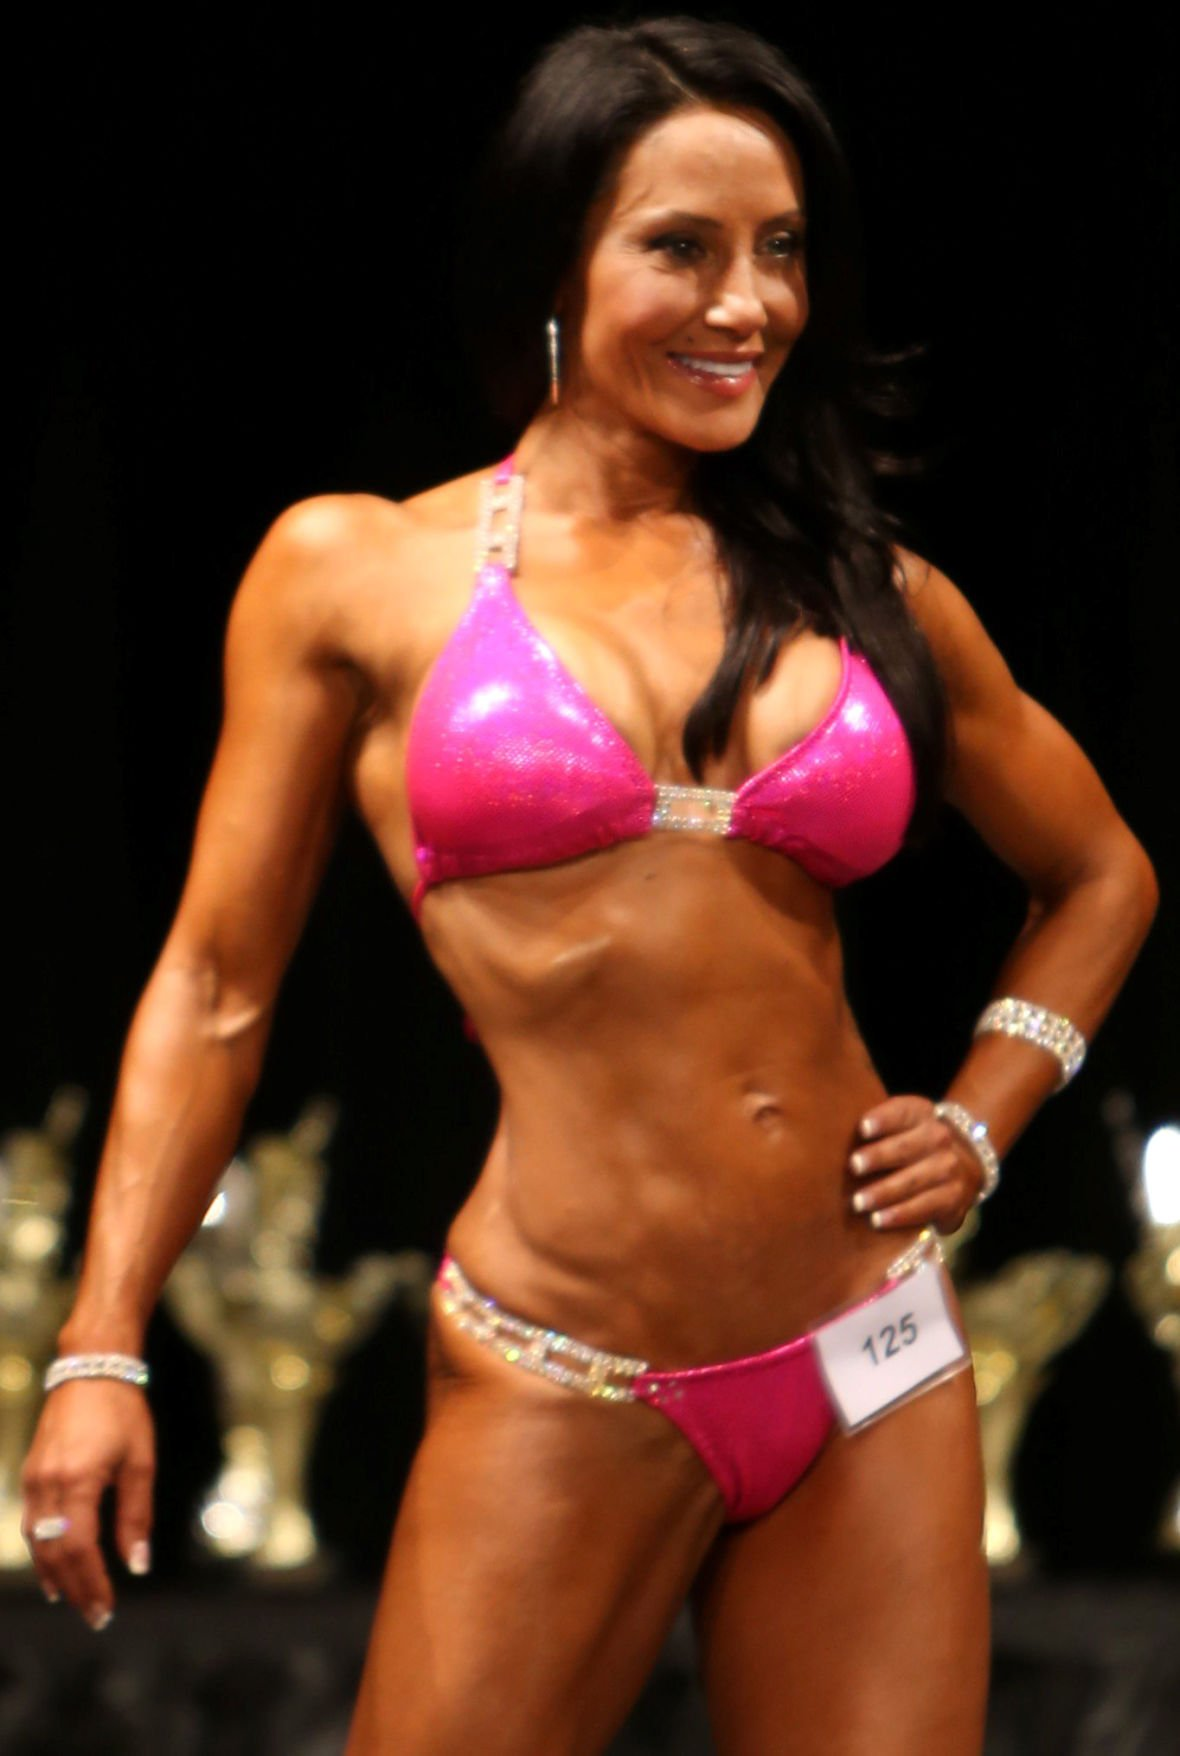 Its never too late to get started omaha woman becomes its never too late to get started omaha woman becomes professional bodybuilder at 46 real people real inspiration omaha ccuart Choice Image